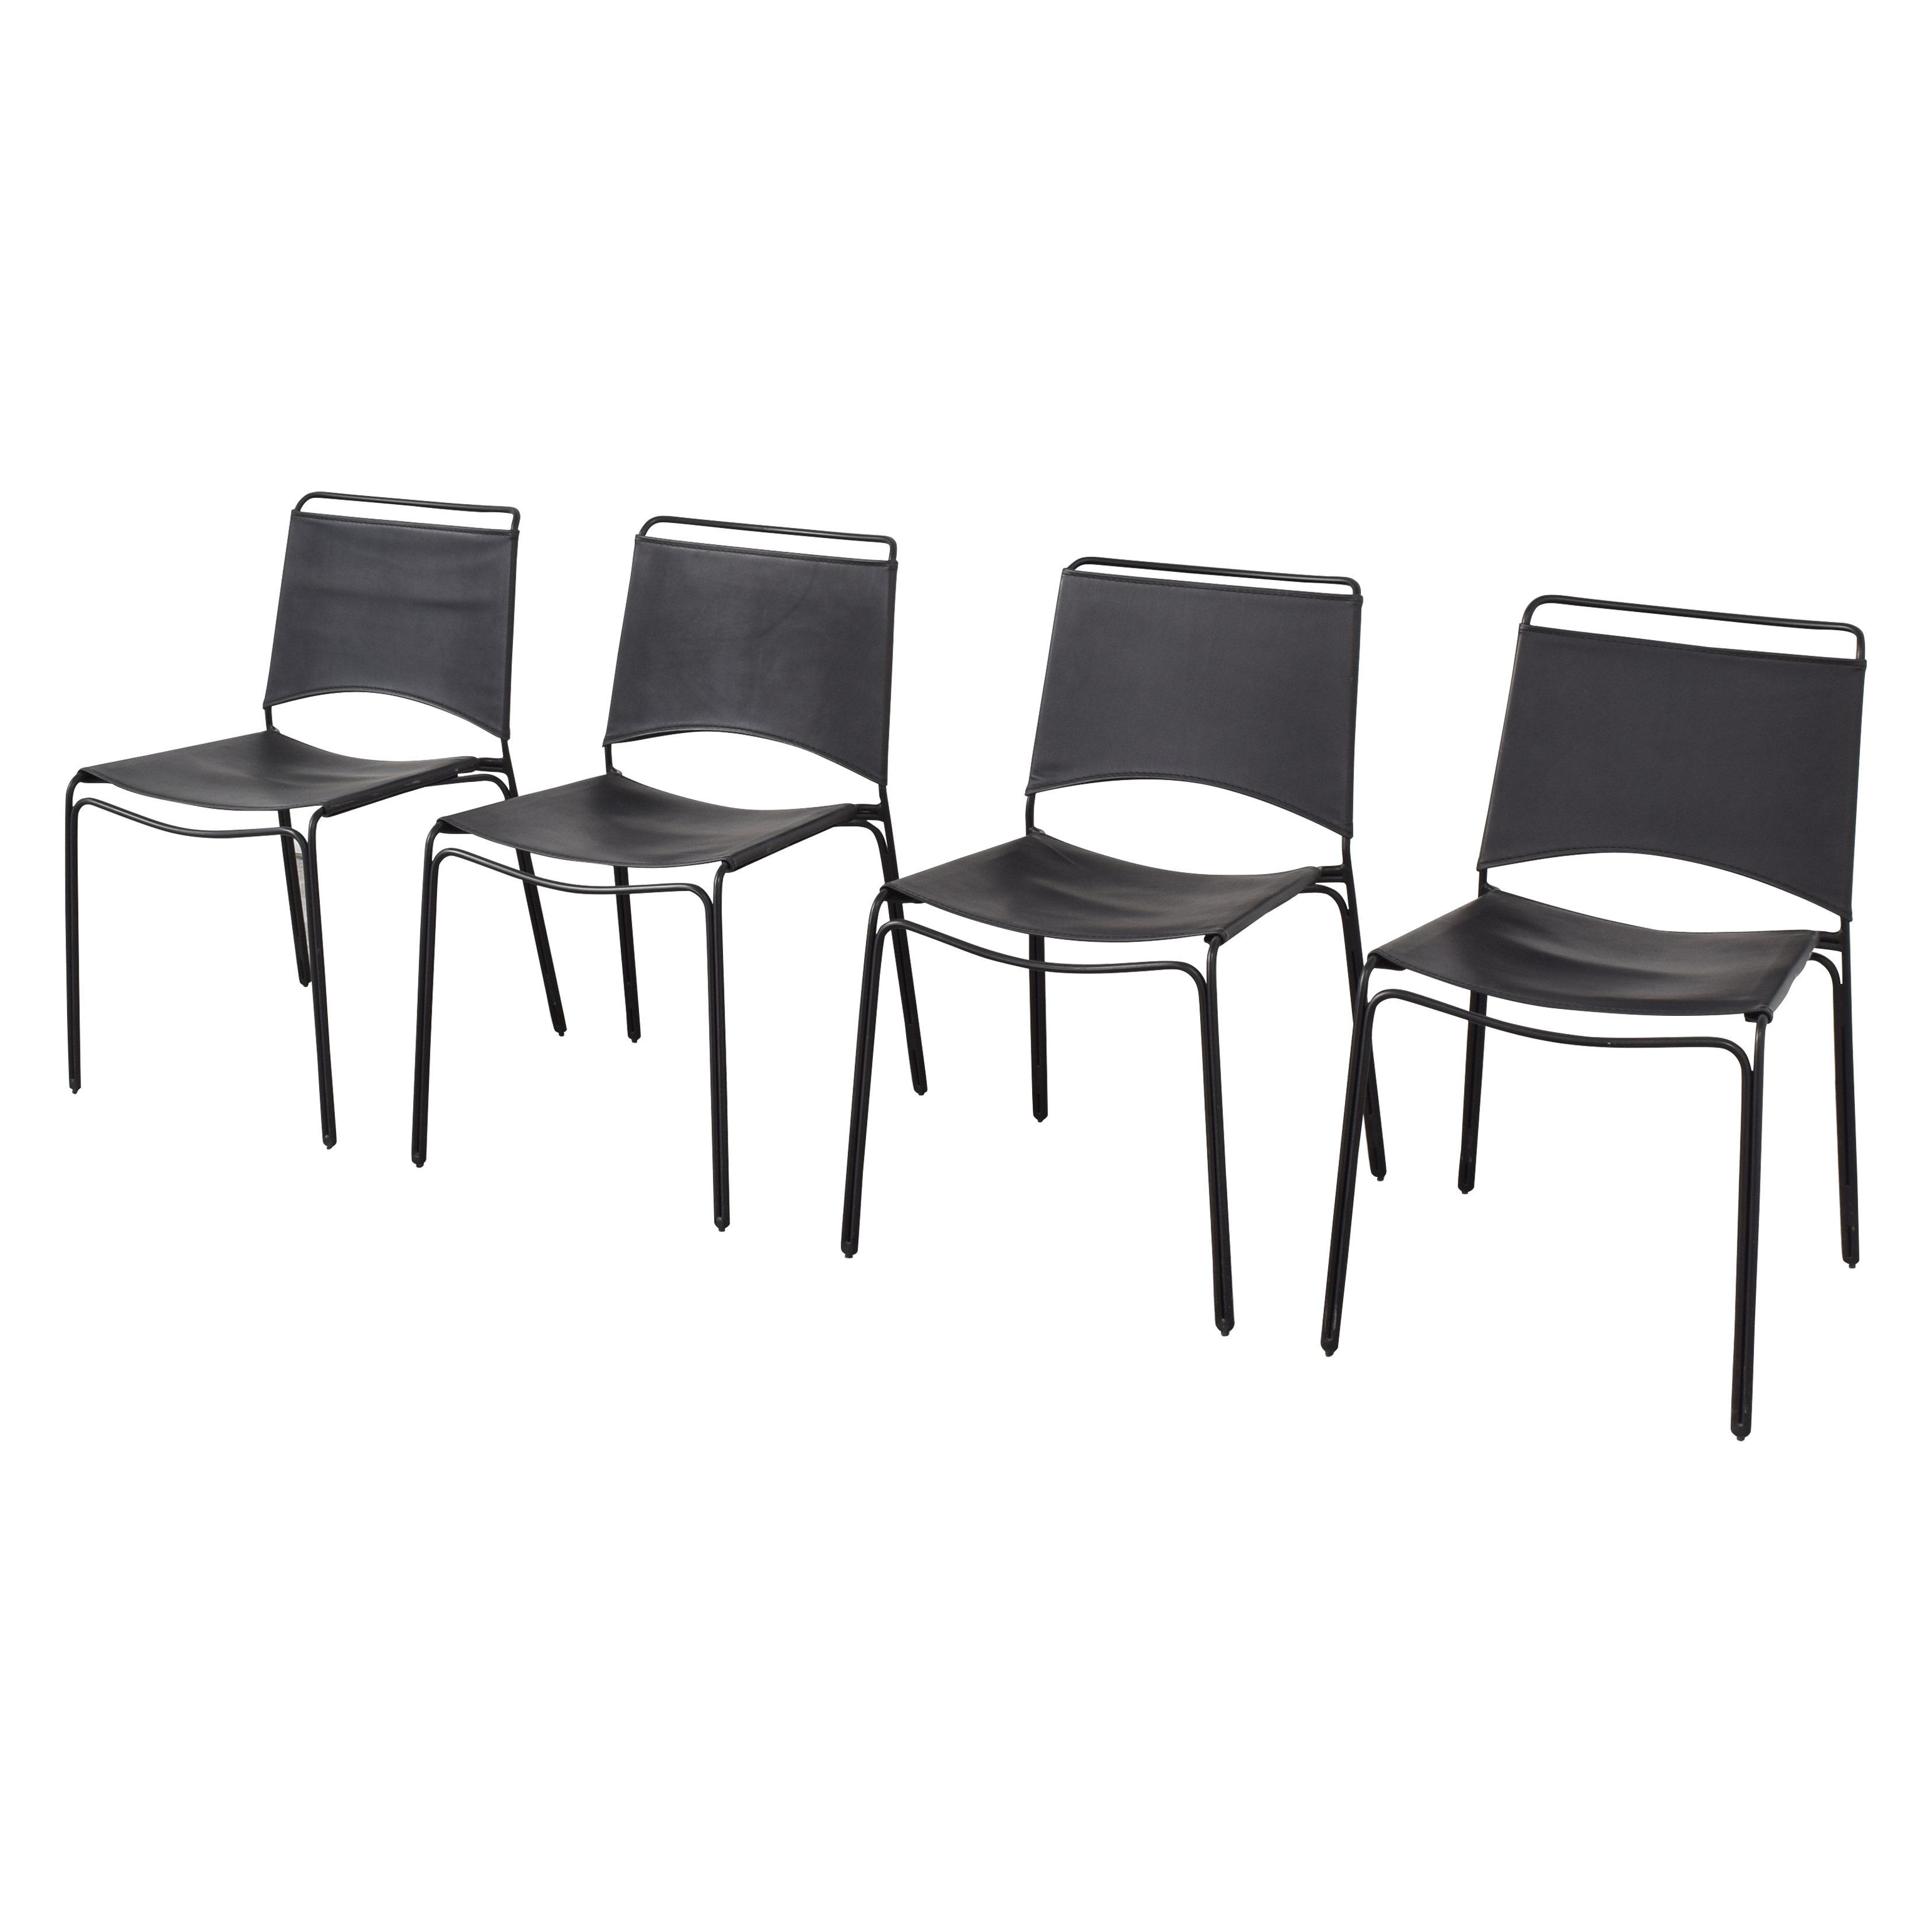 Industry West Trace Dining Chairs sale